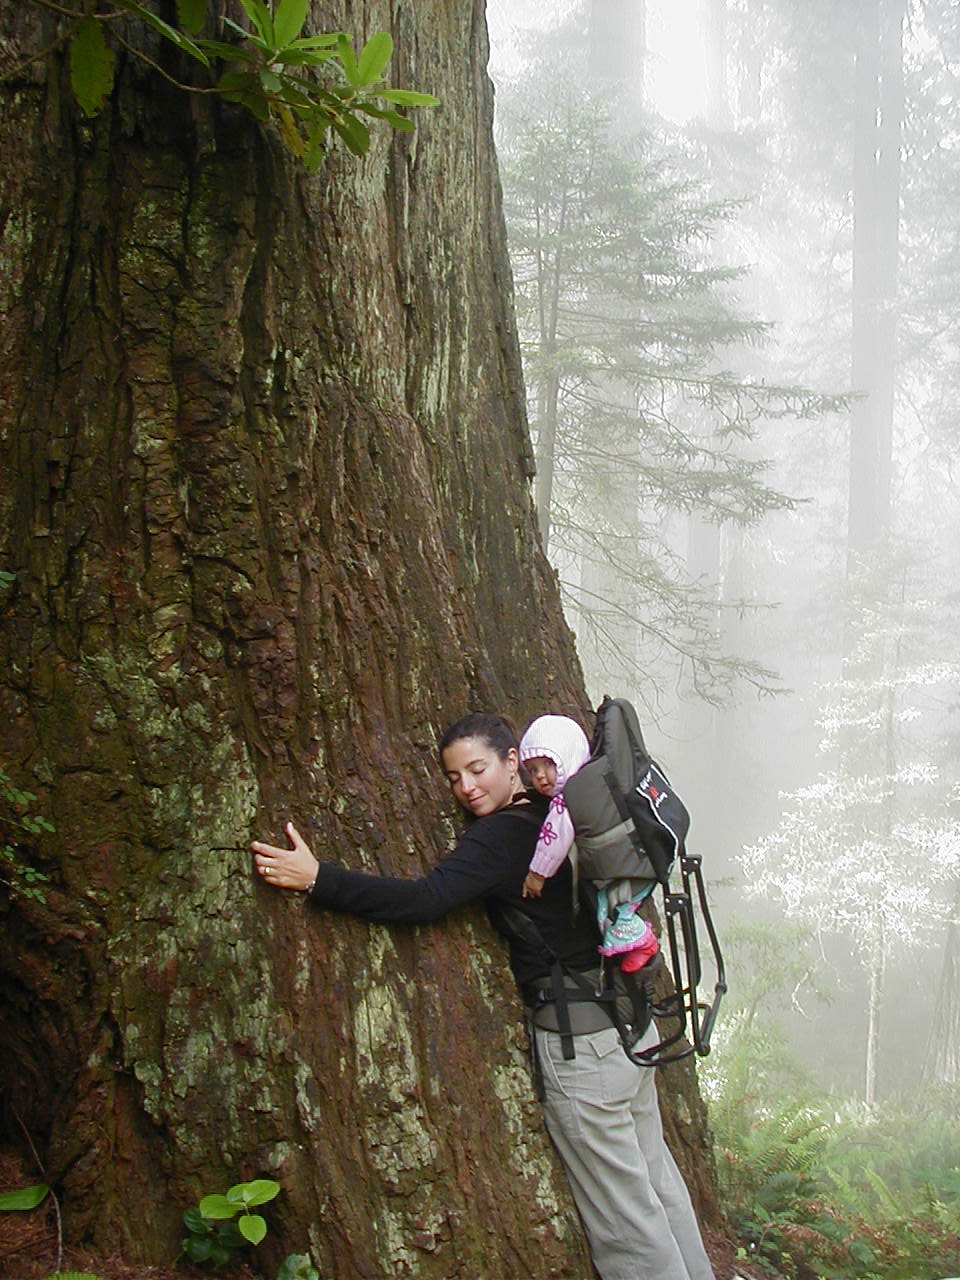 Hugging a Redwood.